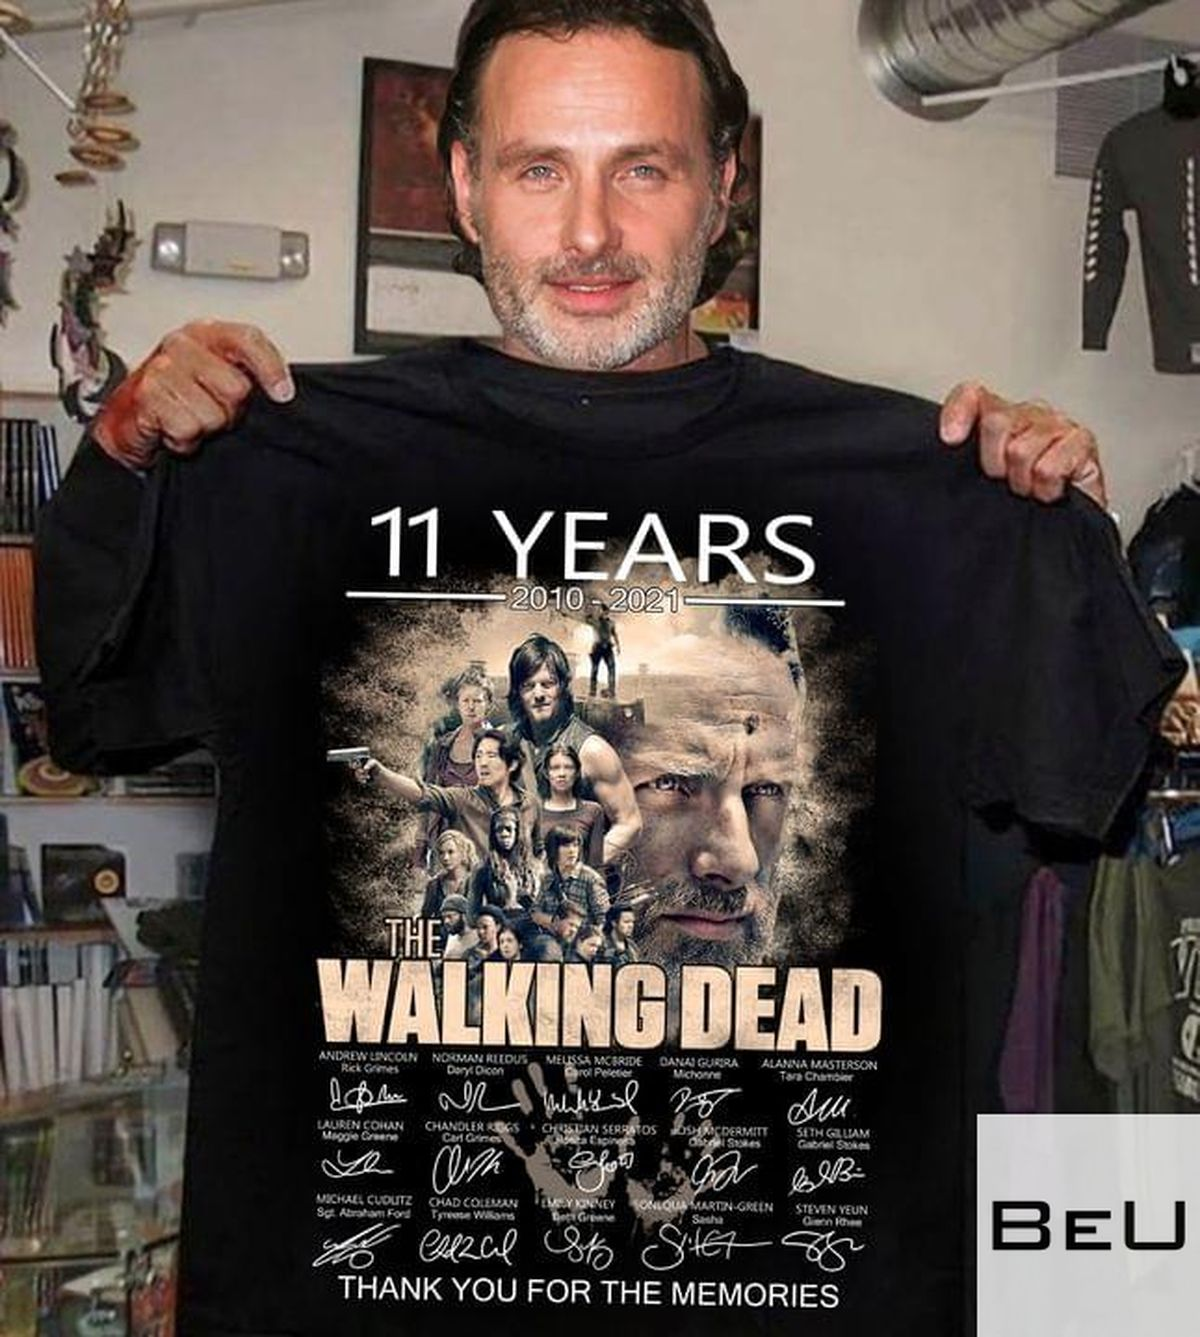 11-Years-2010-2021-The-Walking-Dead-Thank-You-For-The-Memories-Shirt-v